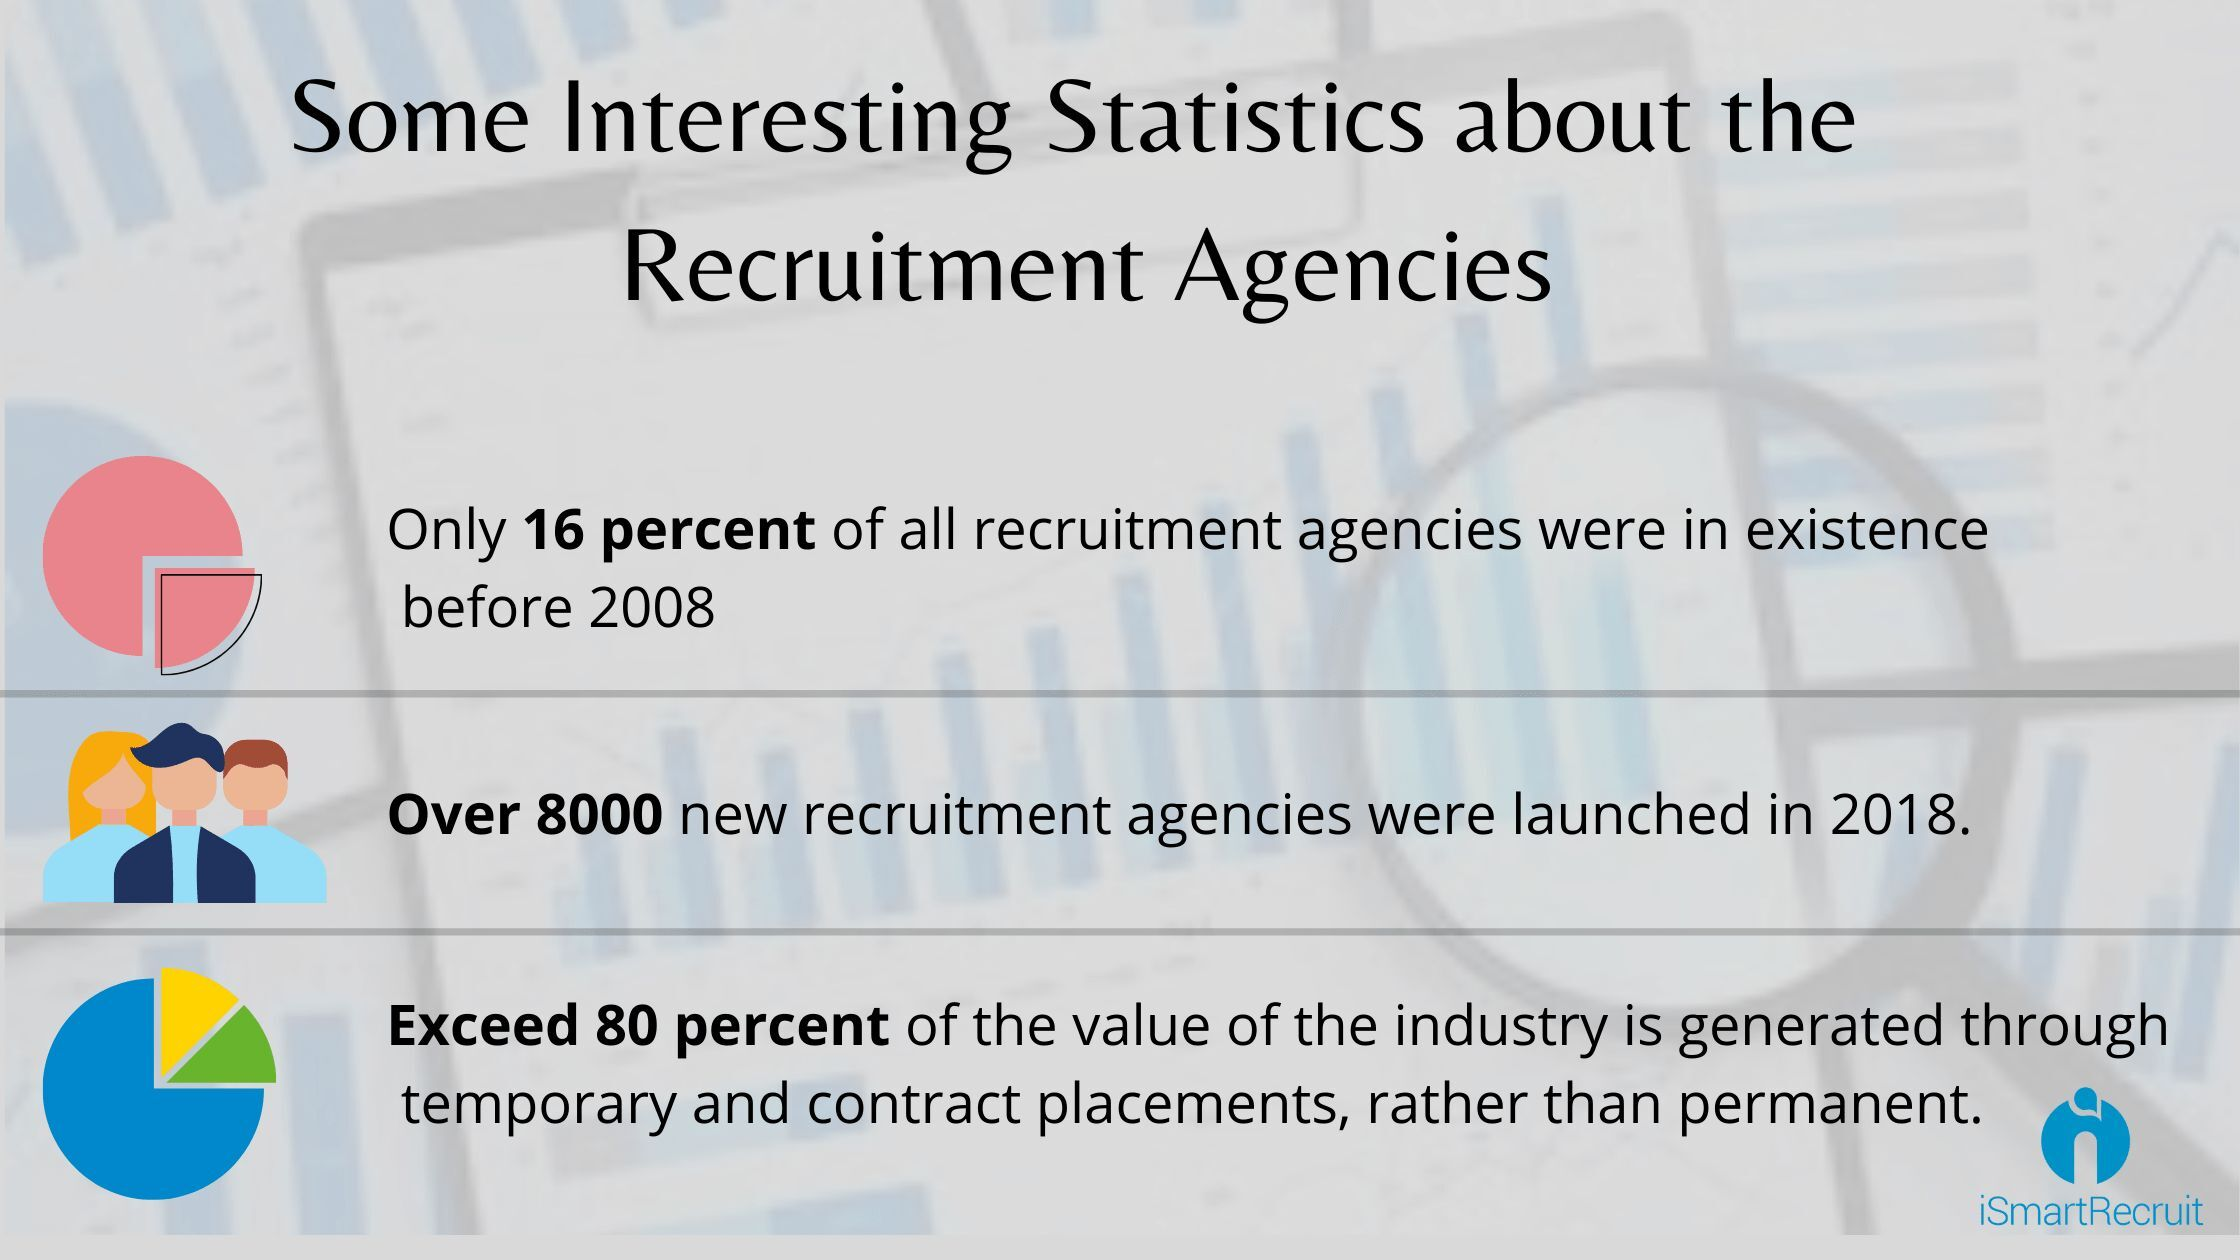 Some interesting facts about recruitment agencies